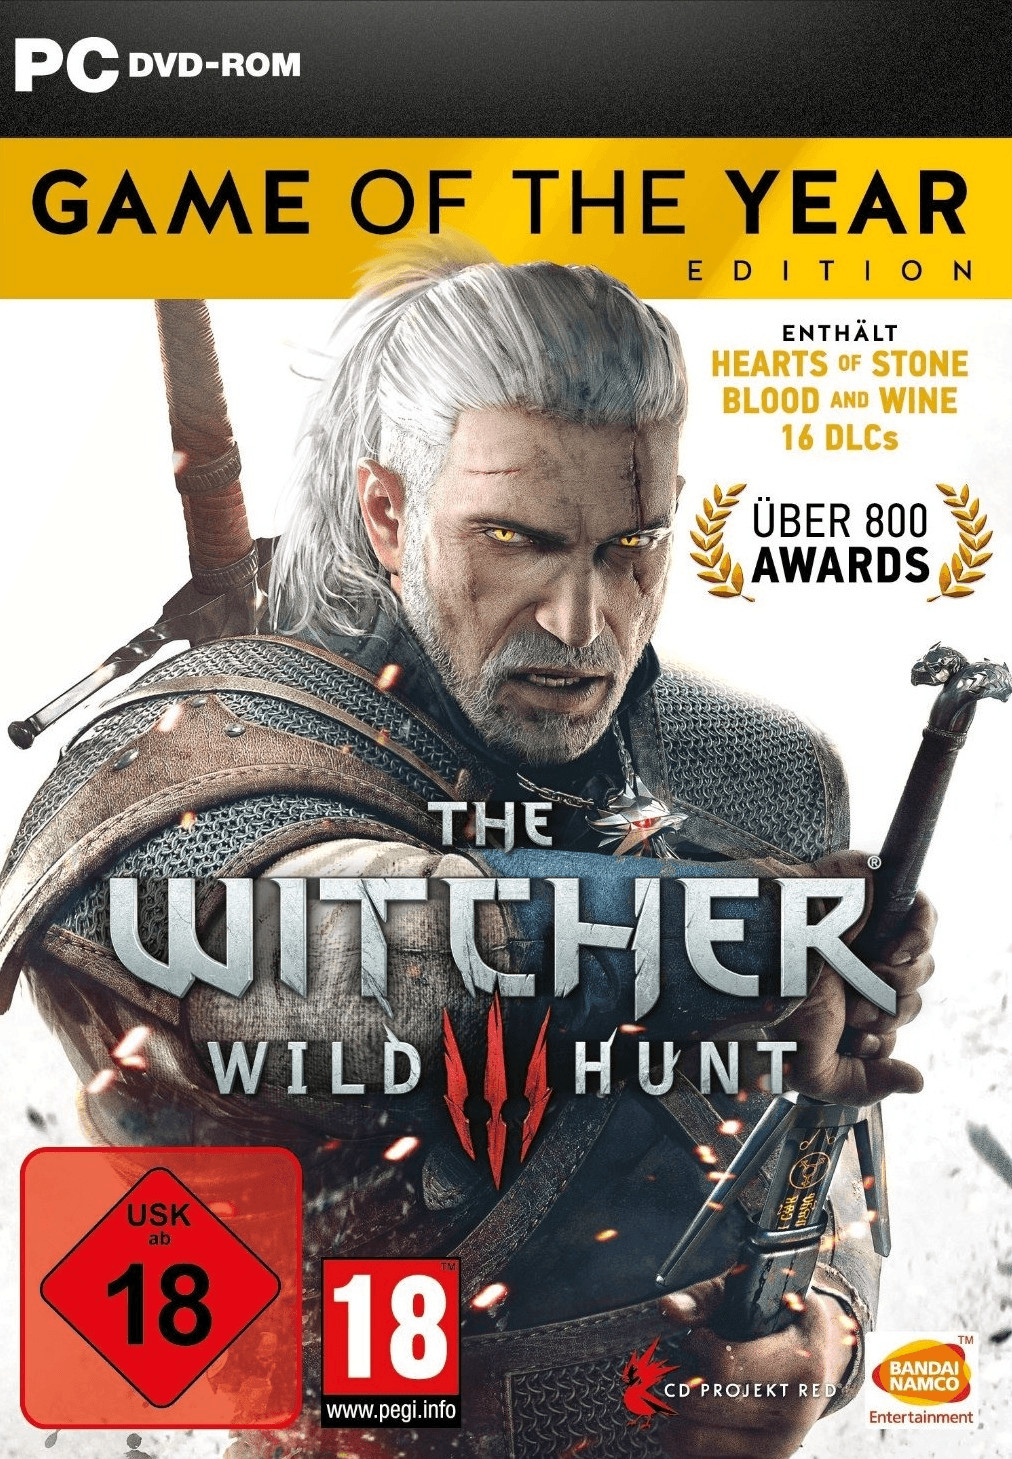 The Witcher 3: Wild Hunt - Game of the Year Edi...